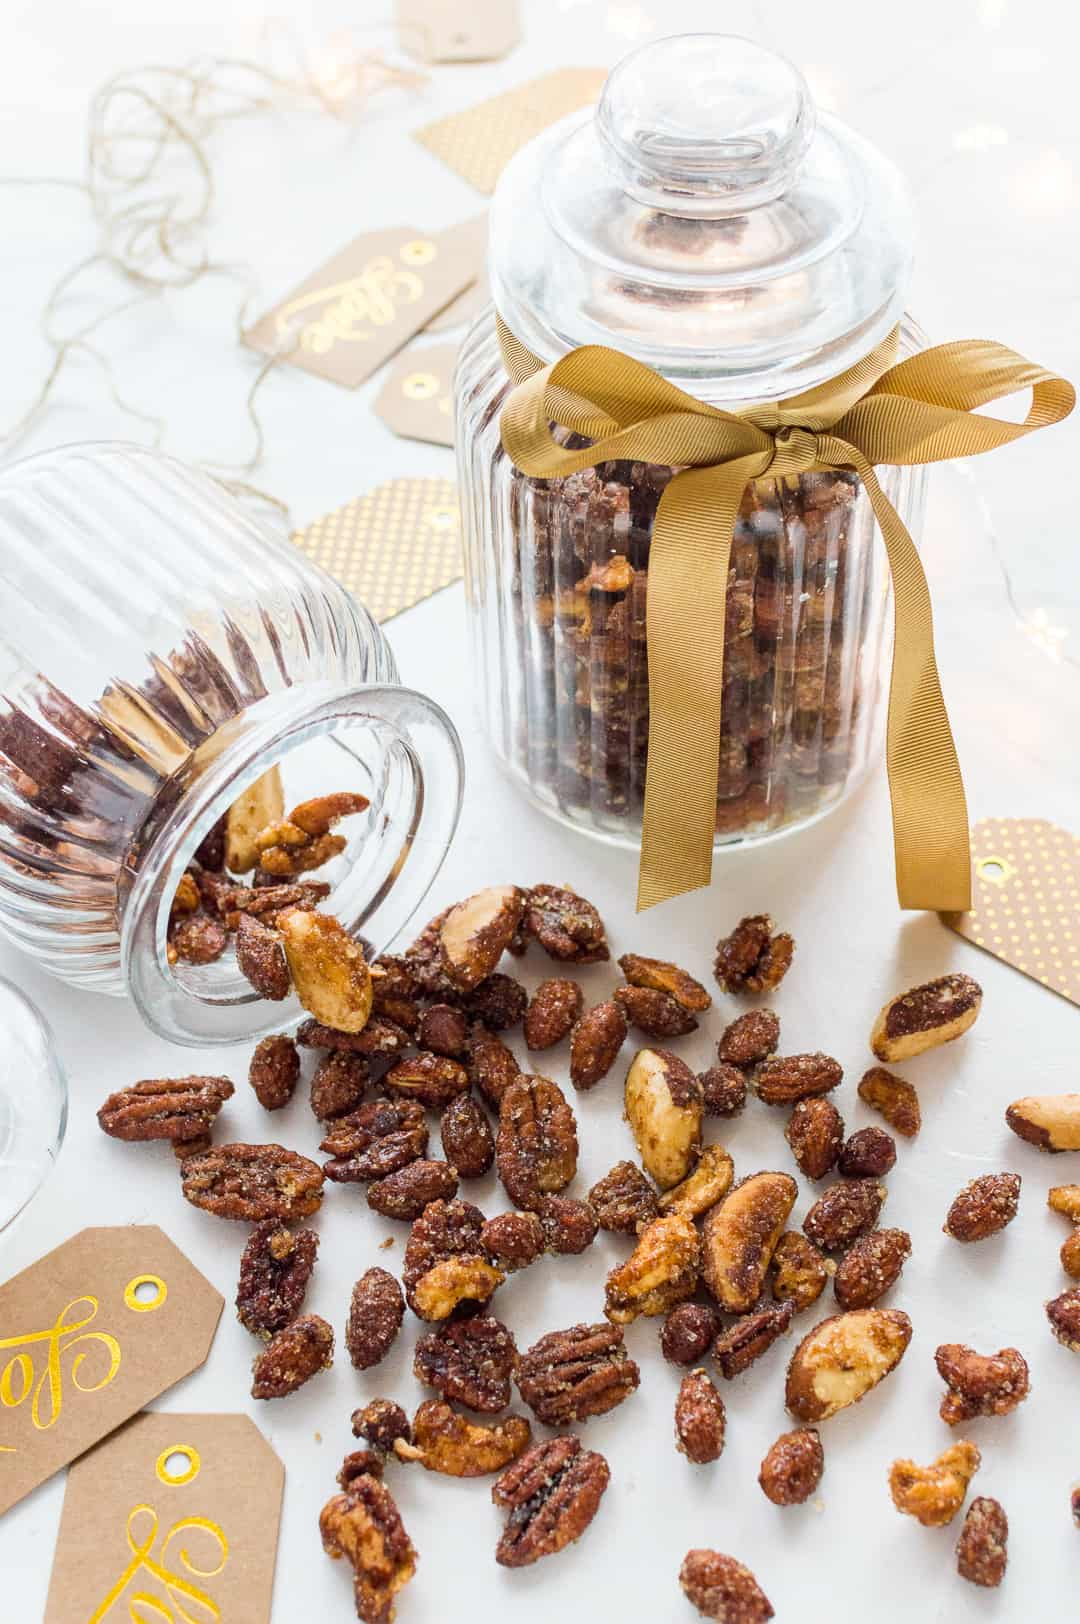 Spiced honey roasted nuts - a little sweet, a little spicy, a little salty and a lot addictive!